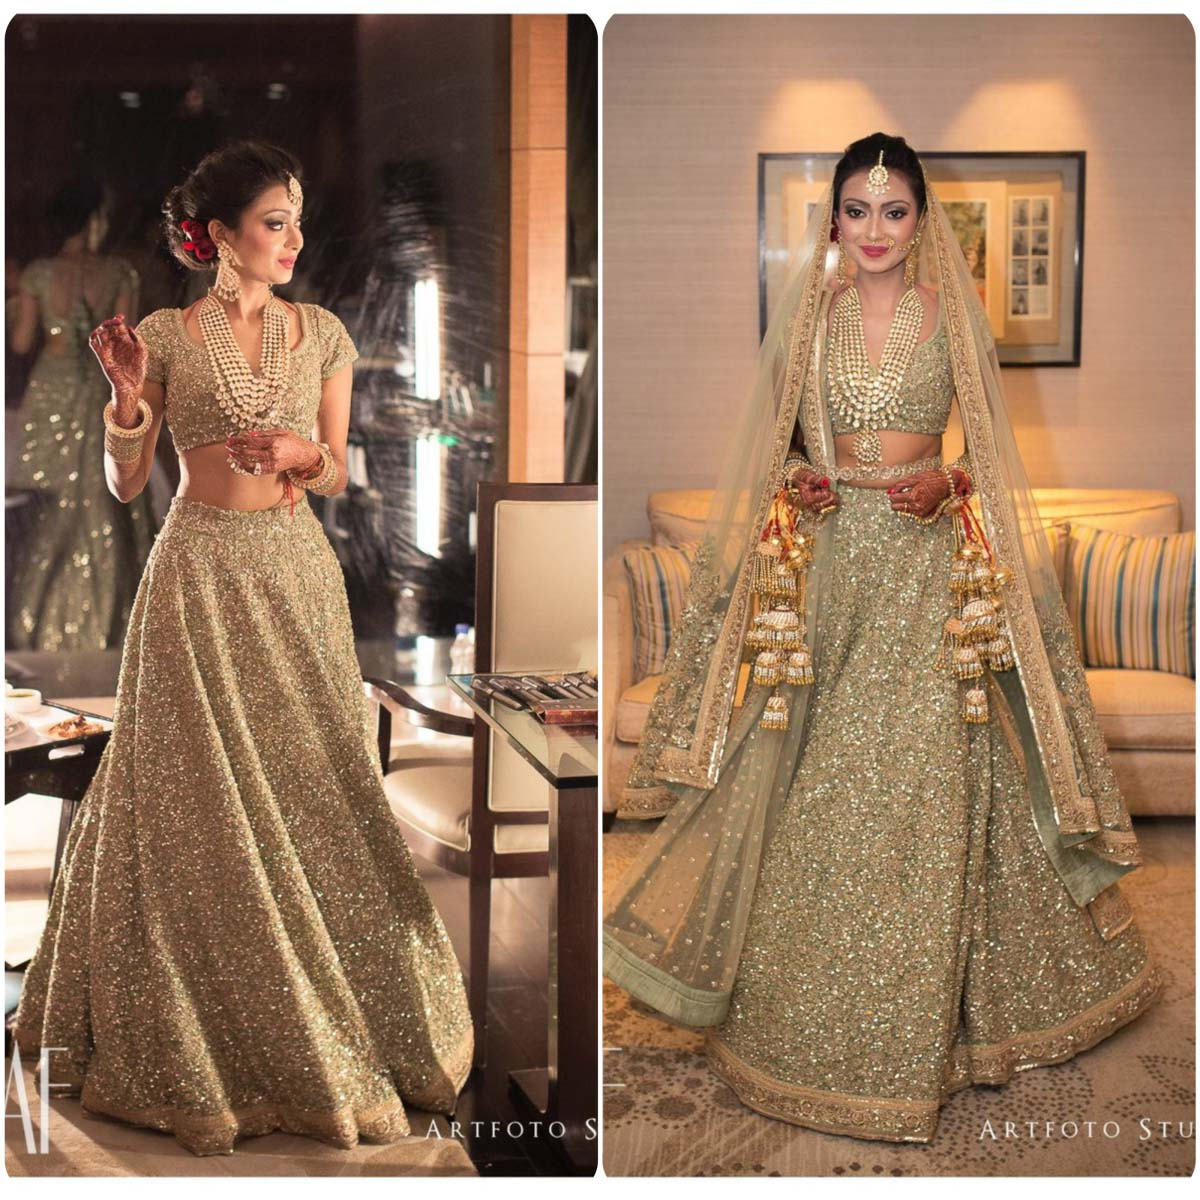 Wedding Dresses 2017 Ideas : Walima reception dresses for wedding bridals stylo planet